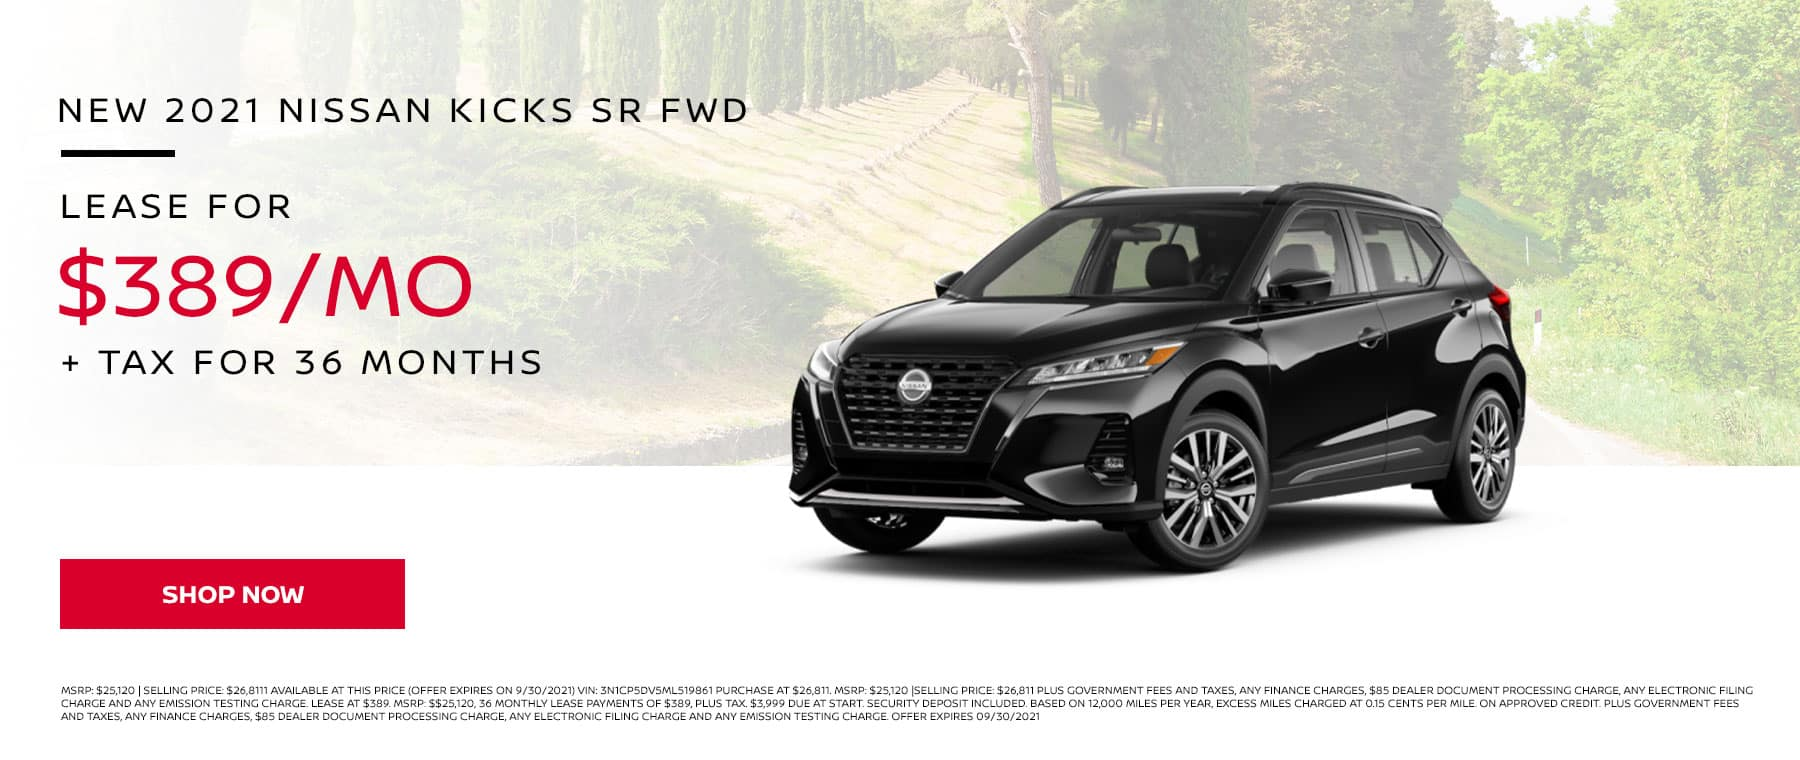 New 2021 Nissan Kicks SR FWD, Lease for $389 Per Month + Tax for 36 Months